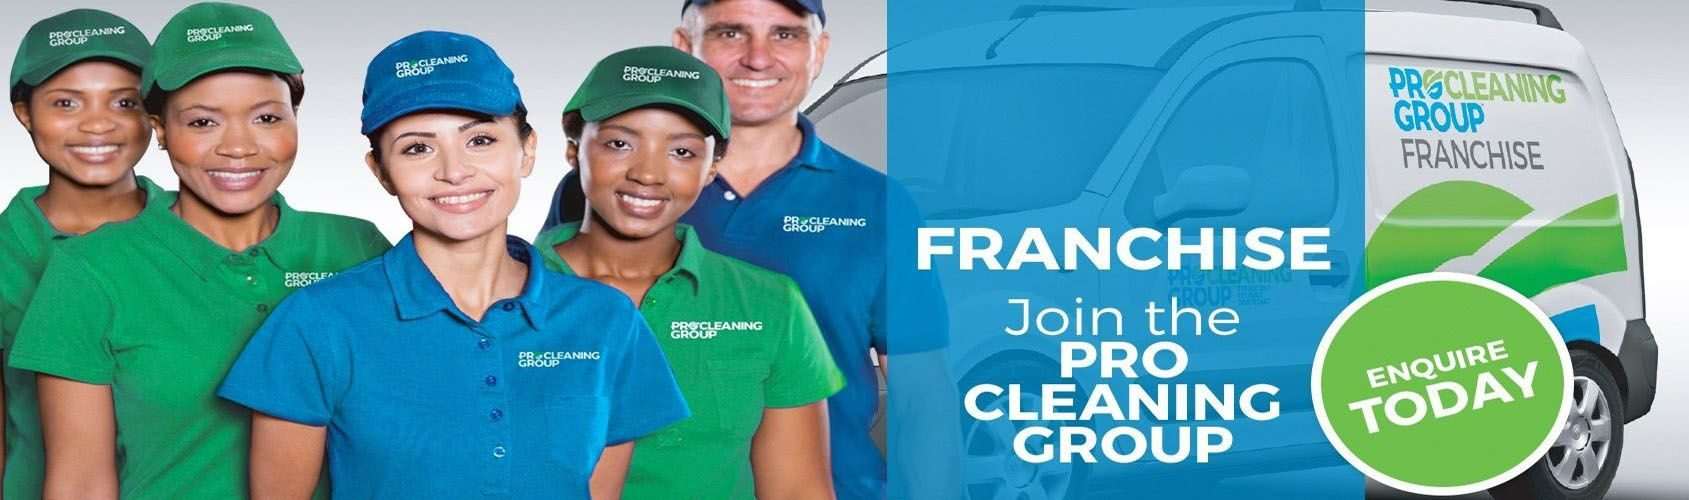 commercial cleaning franchises for sale